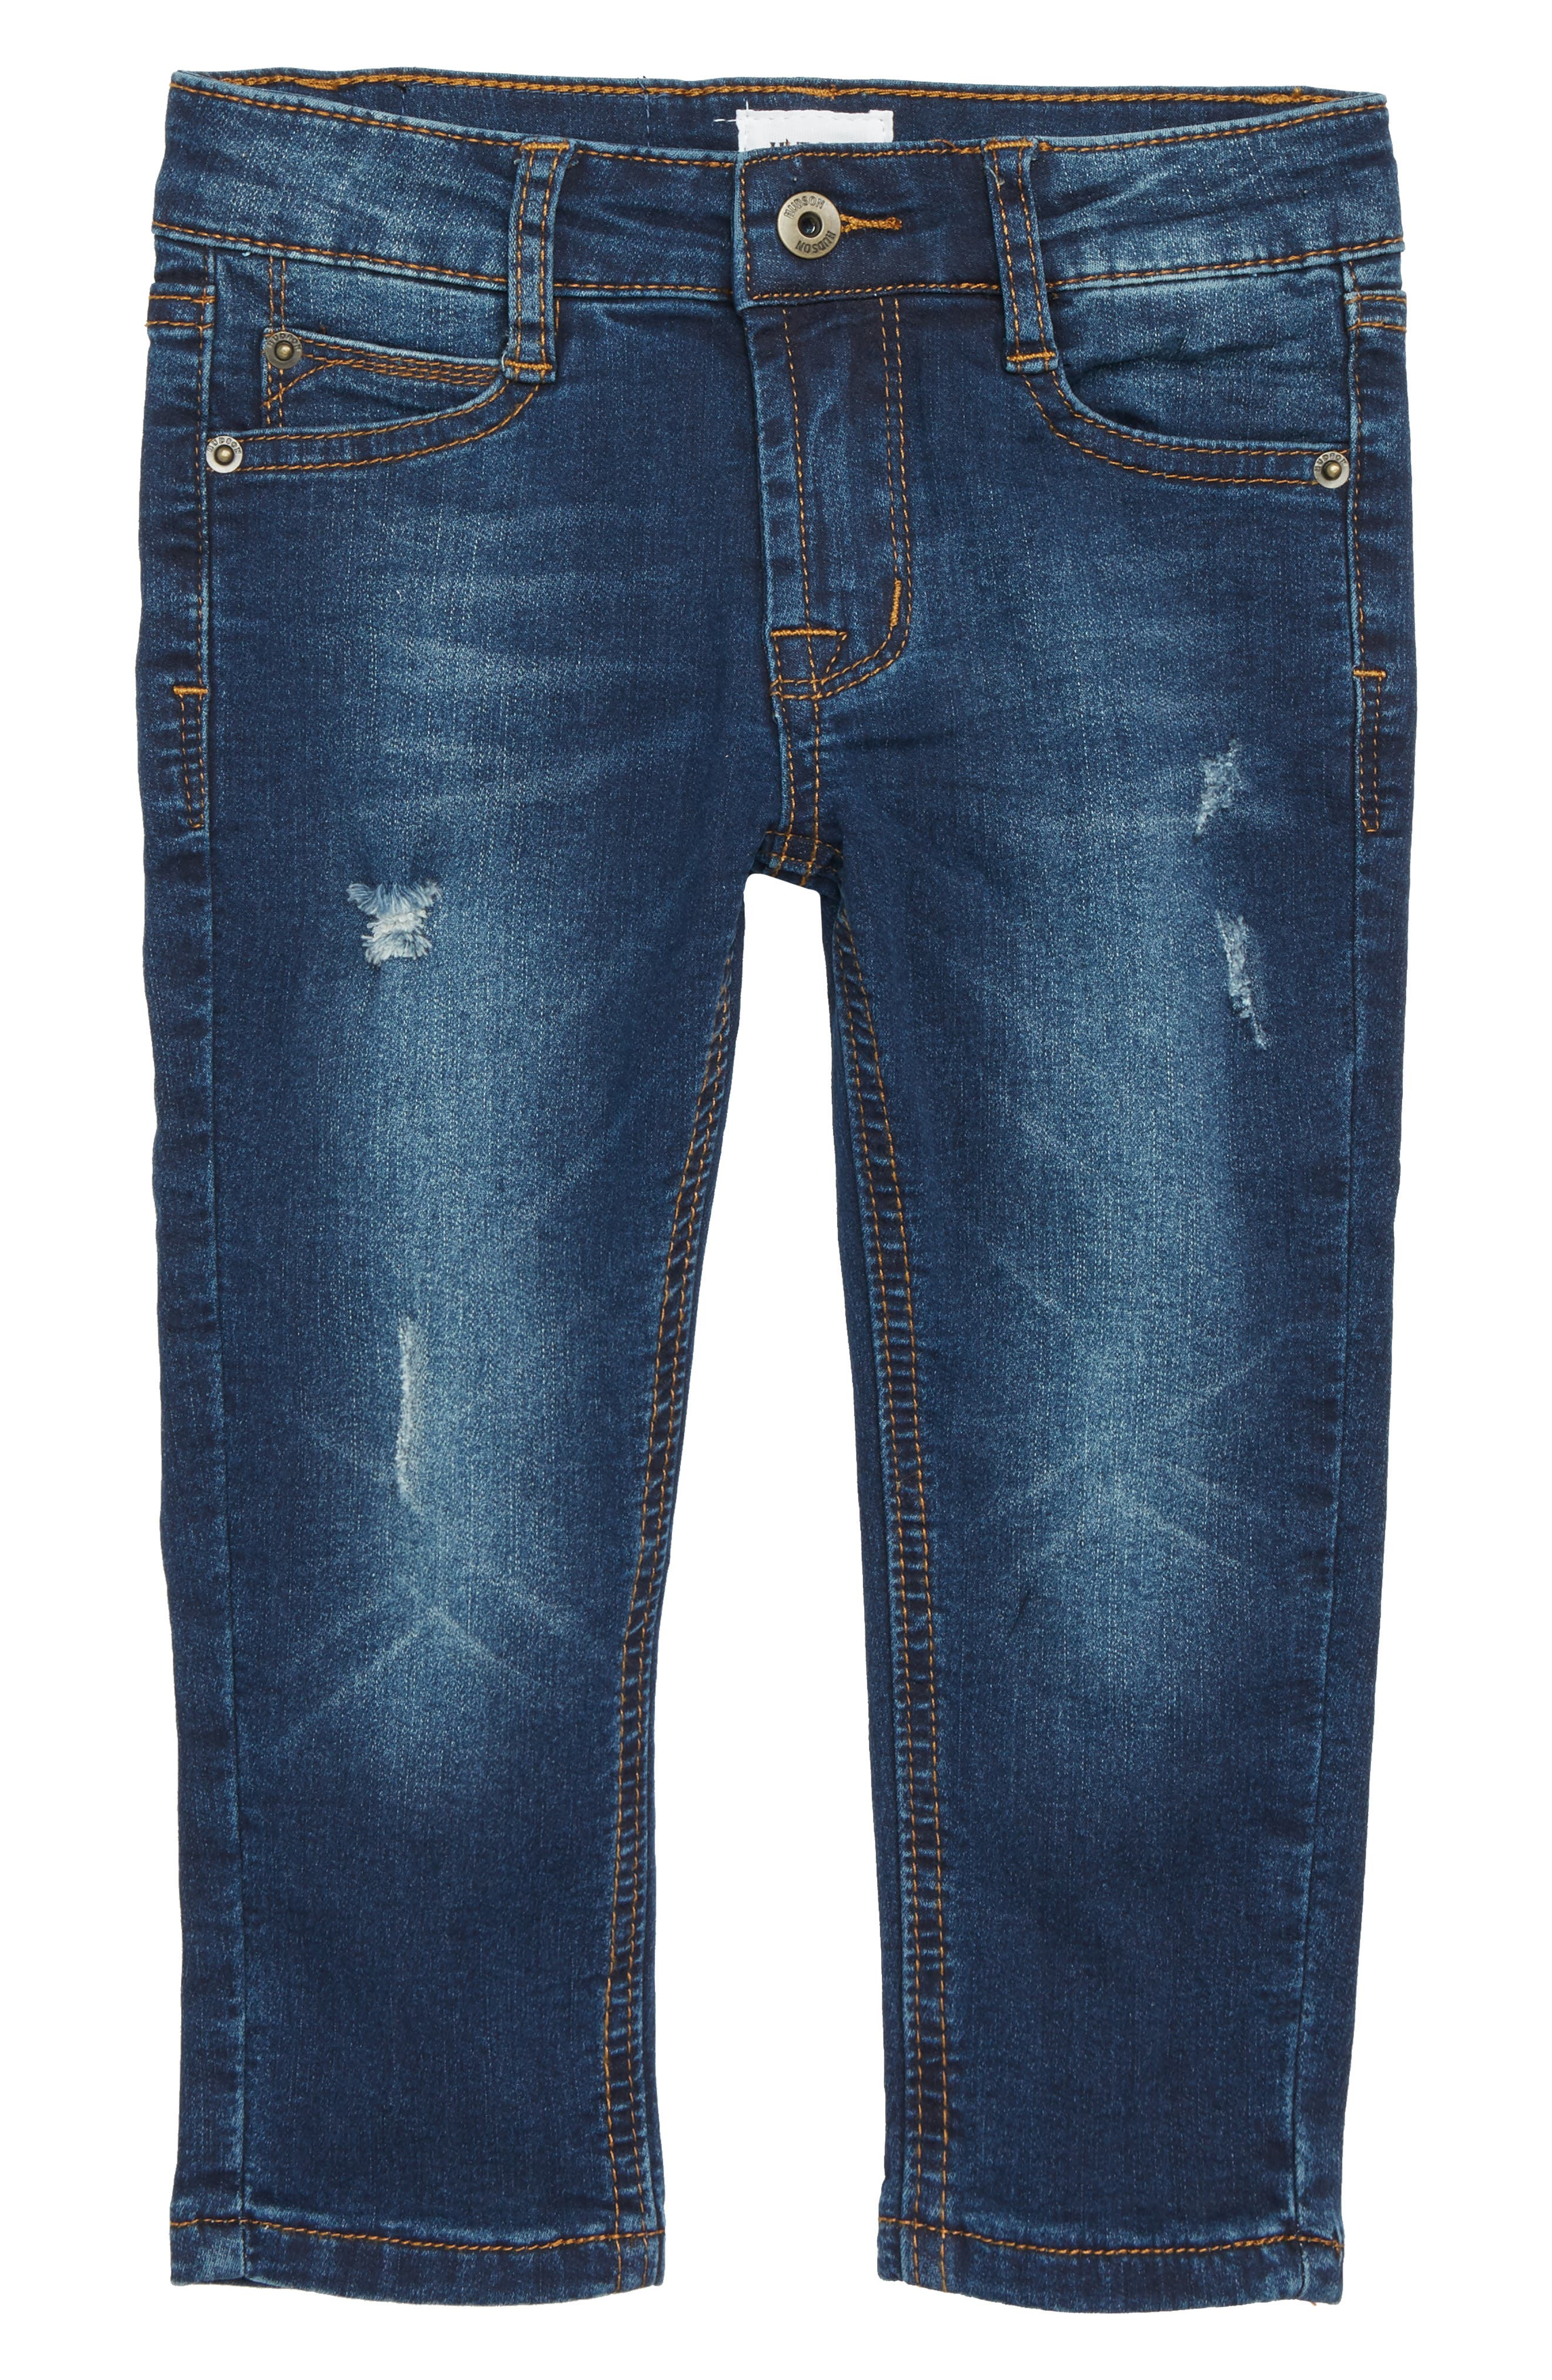 Jude Slim Fit Skinny Jeans,                             Main thumbnail 1, color,                             Filly